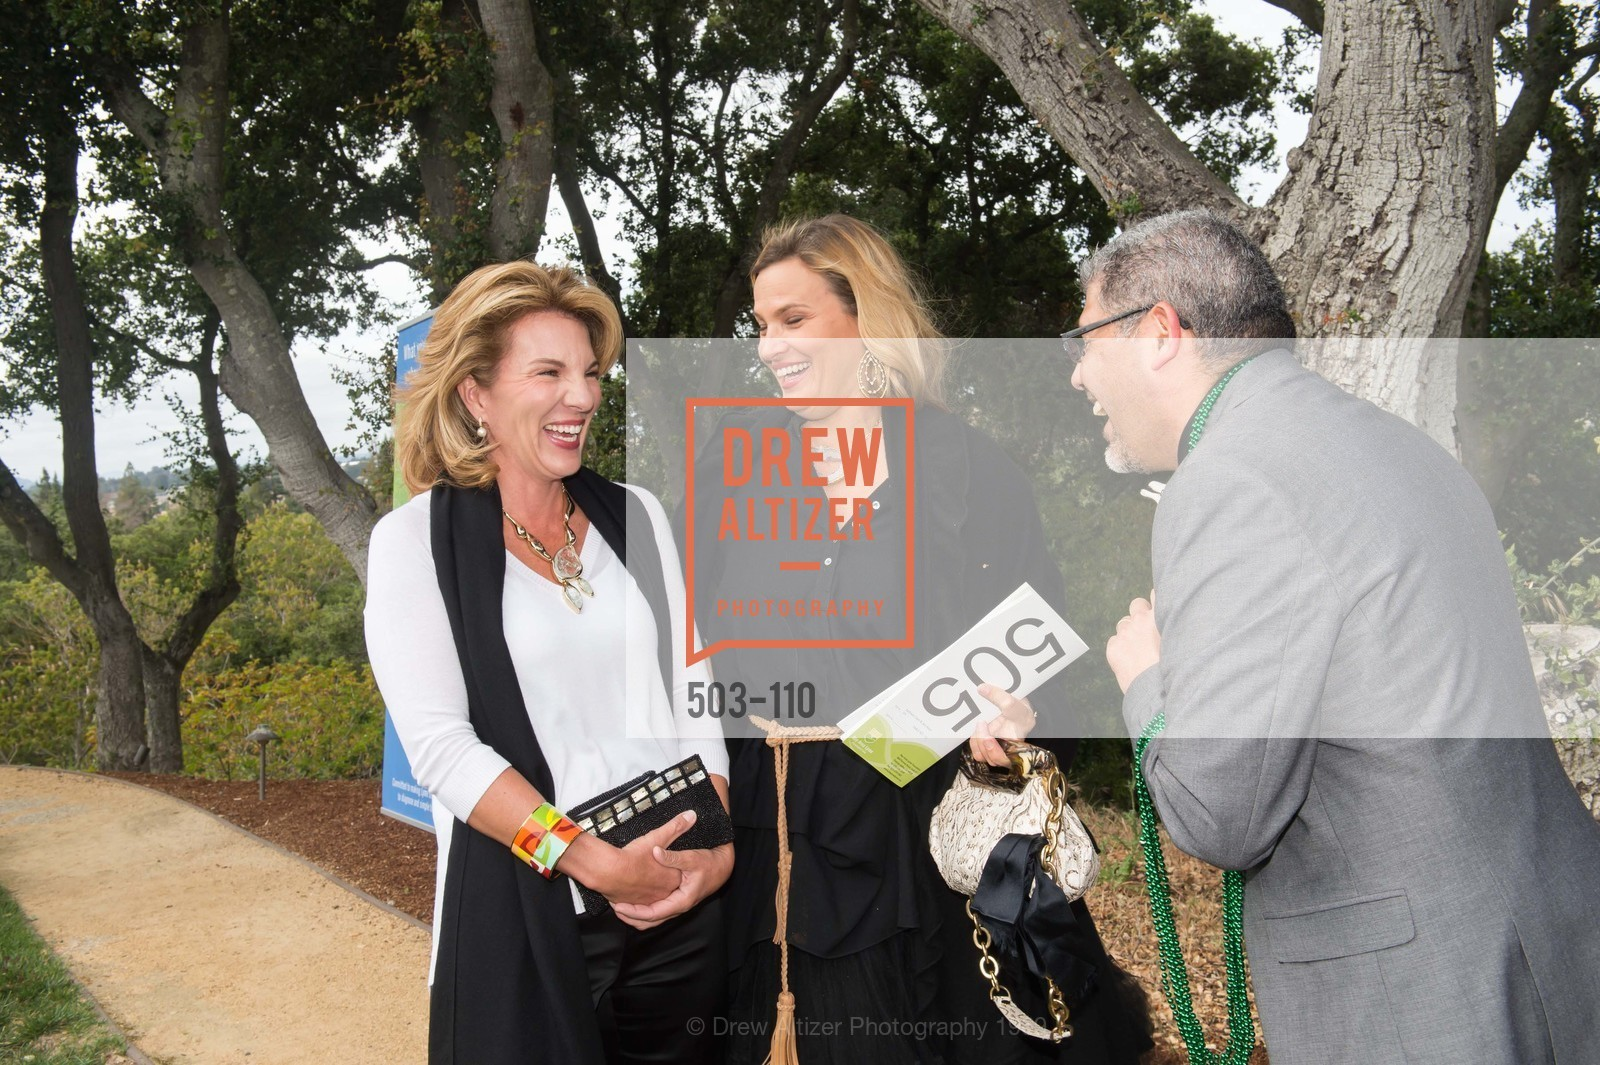 Jen Abed, Kathleen McClellan Sain, LYME AID 2015 Benefiting the Bay Area Lyme Foundation, Private Residence, May 16th, 2015,Drew Altizer, Drew Altizer Photography, full-service agency, private events, San Francisco photographer, photographer california